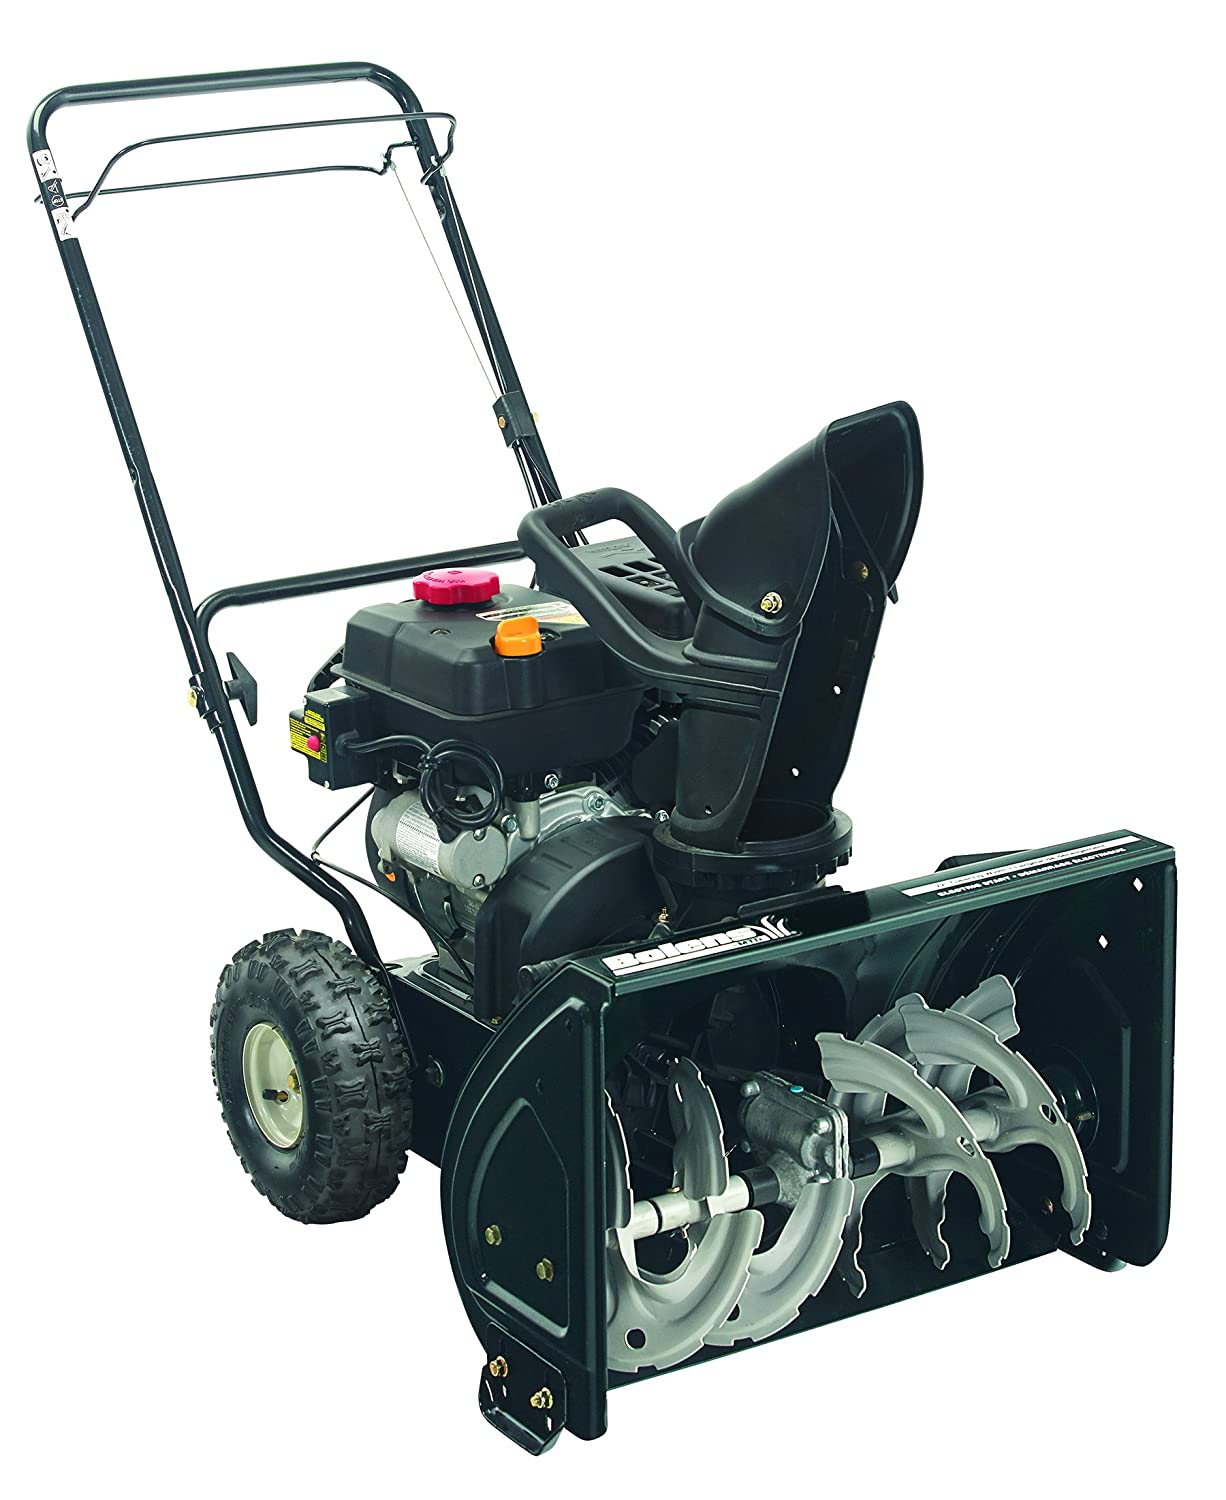 "Bolens 31AS32AD565 Two-Stage 22"" Snow Blower - 179cc PowerMore OHV:  Amazon.ca: Patio, Lawn & Garden"